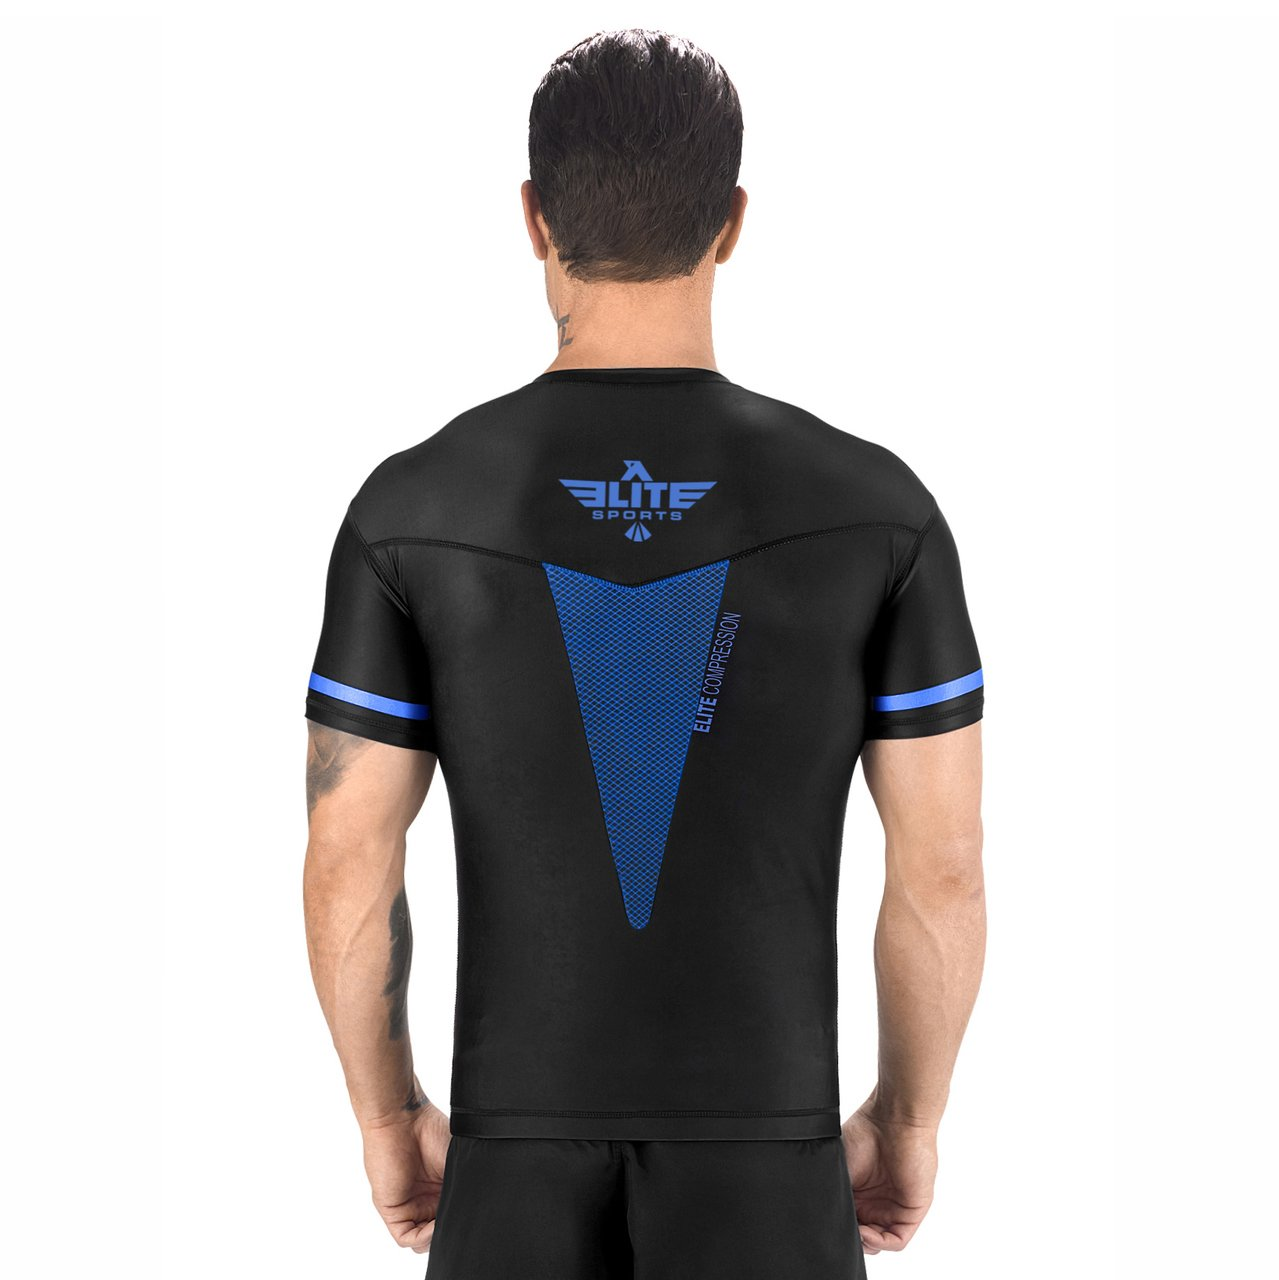 Load image into Gallery viewer, Elite Sports Star Series Sublimation Black/Blue Short Sleeve MMA Rash Guard